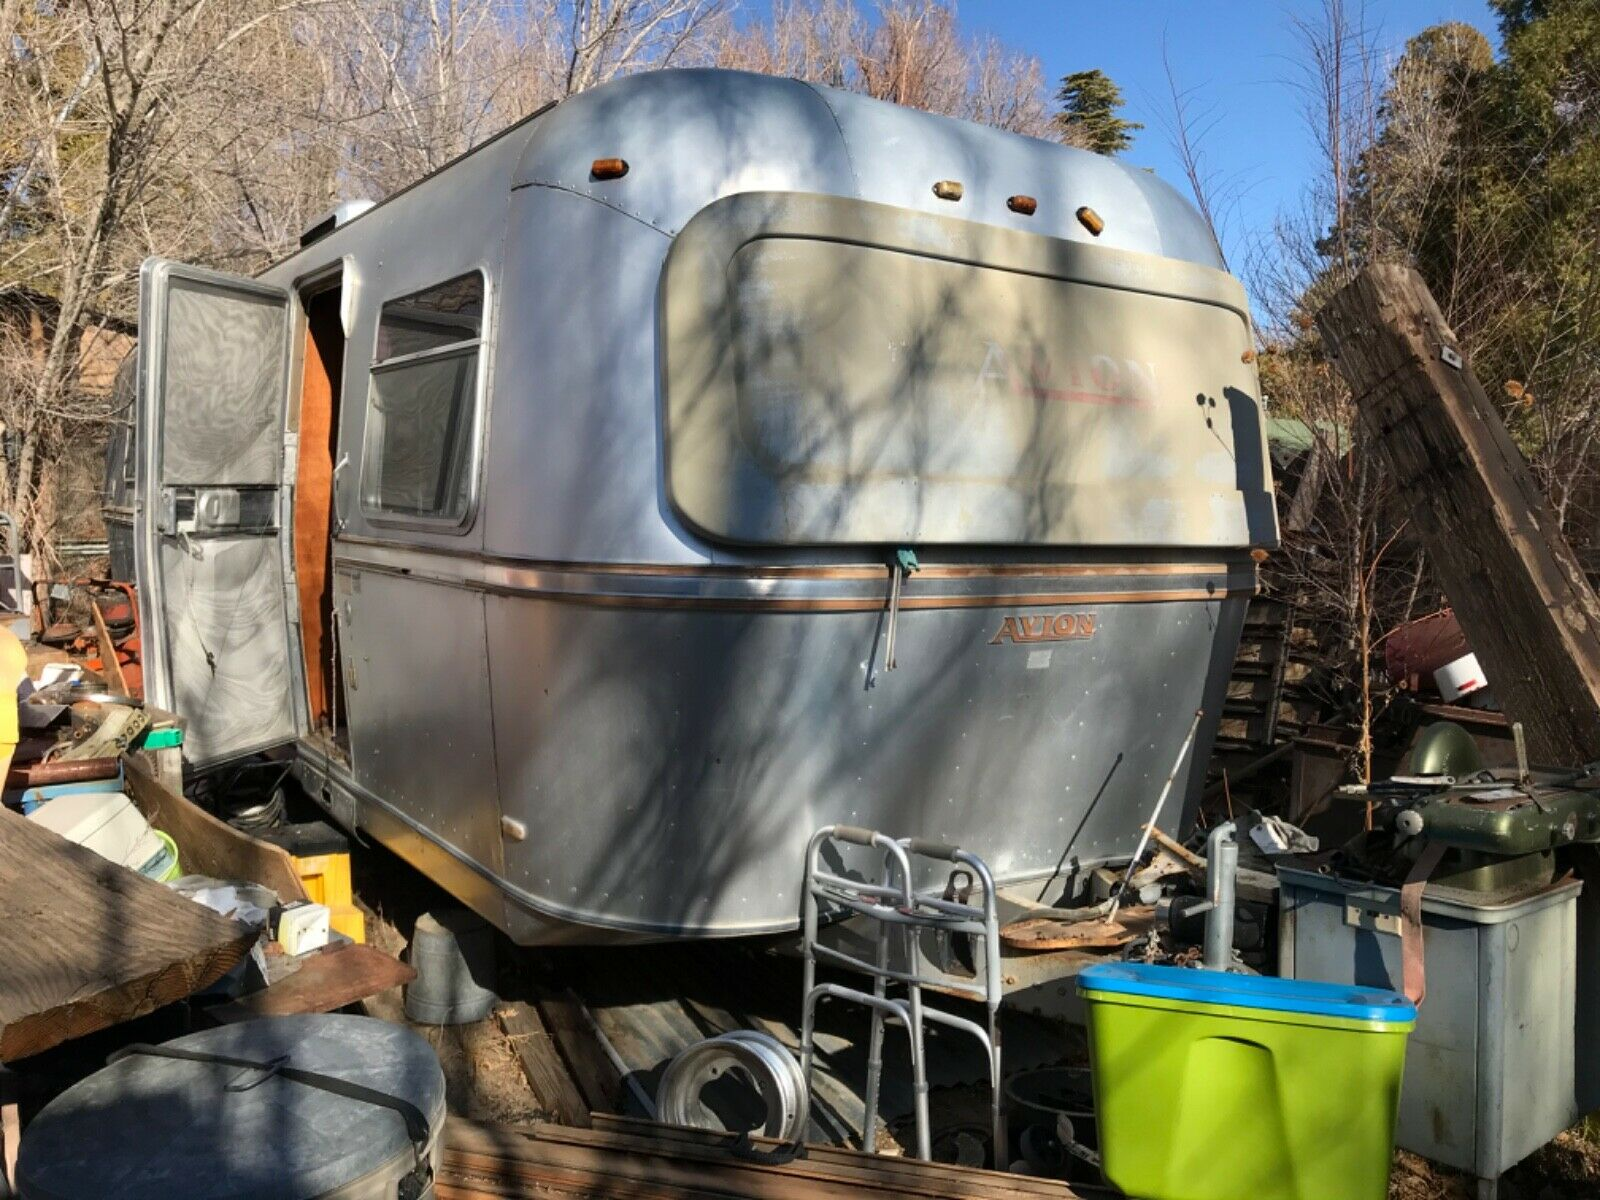 Airstream replica 1973 Avion LaGrande camper for sale